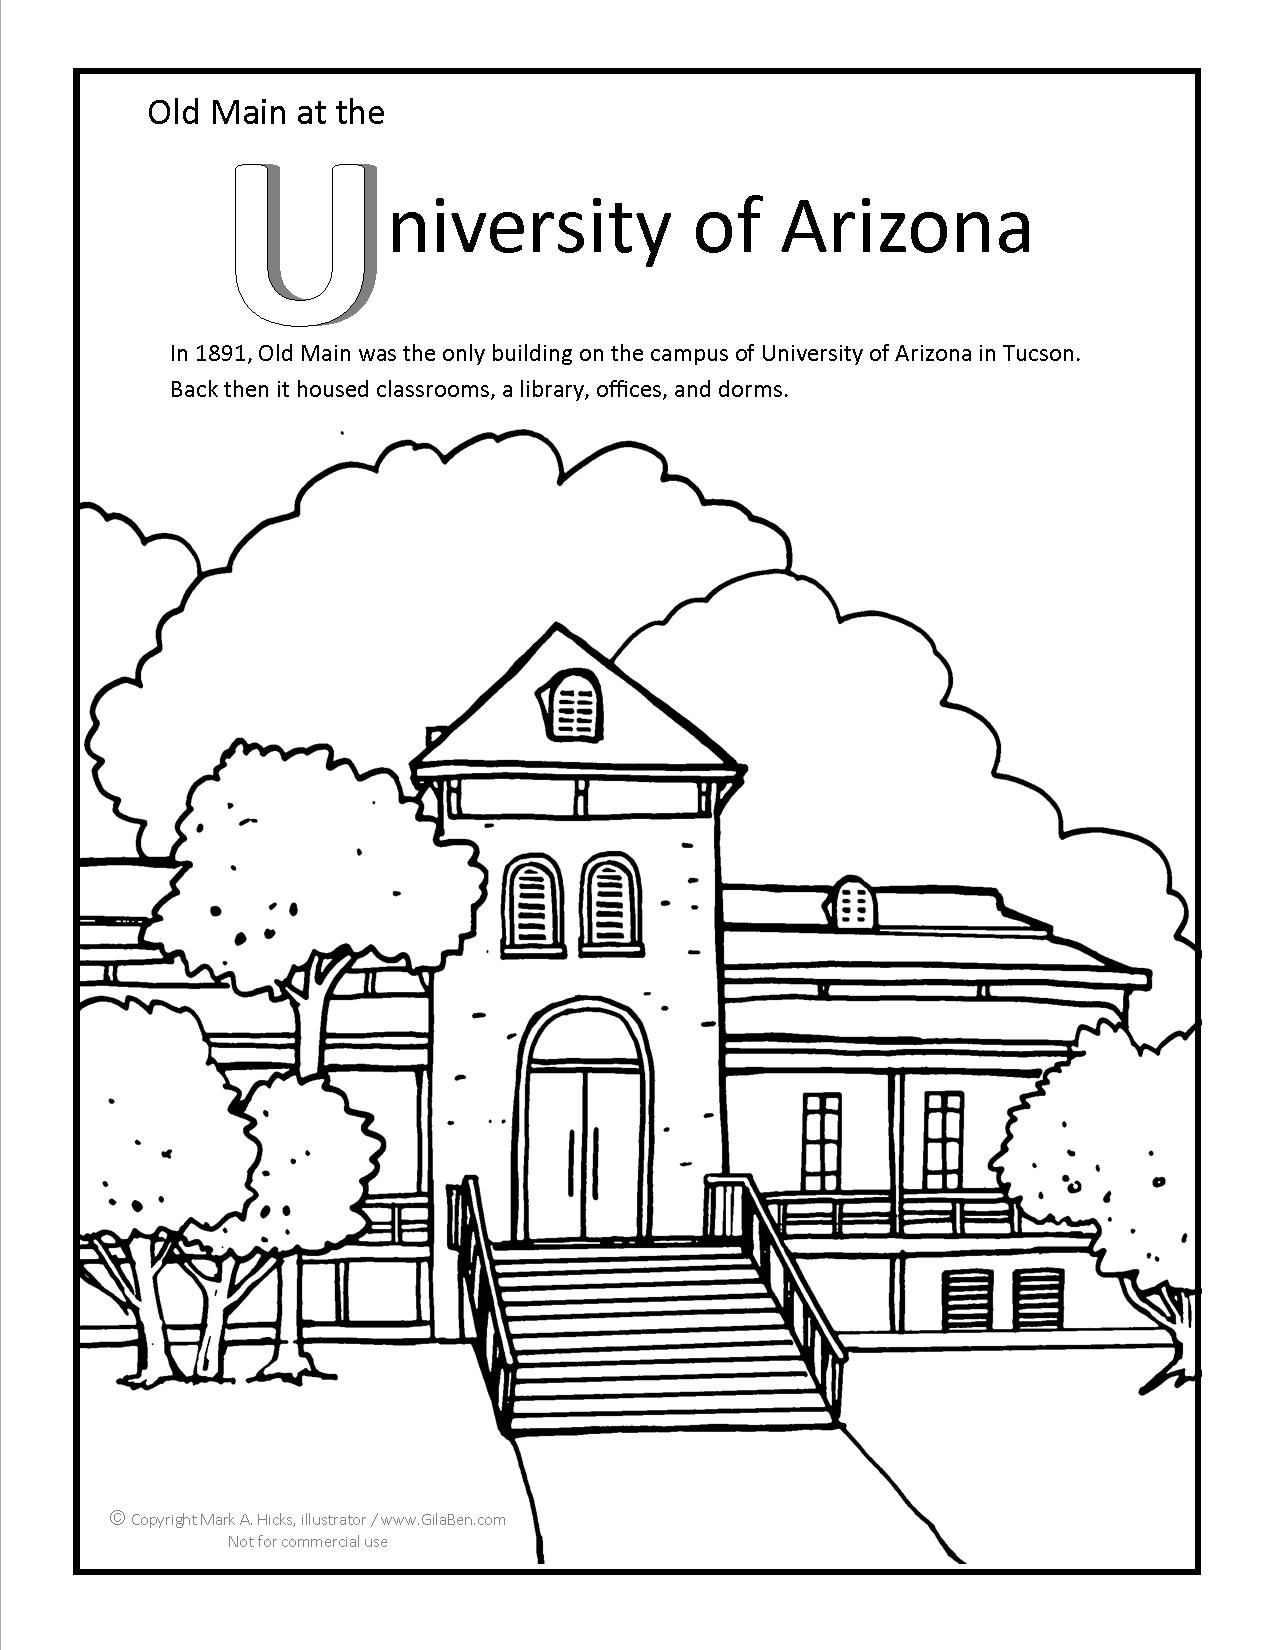 University Of Arizona Old Main Coloring Page At Gilaben Com With